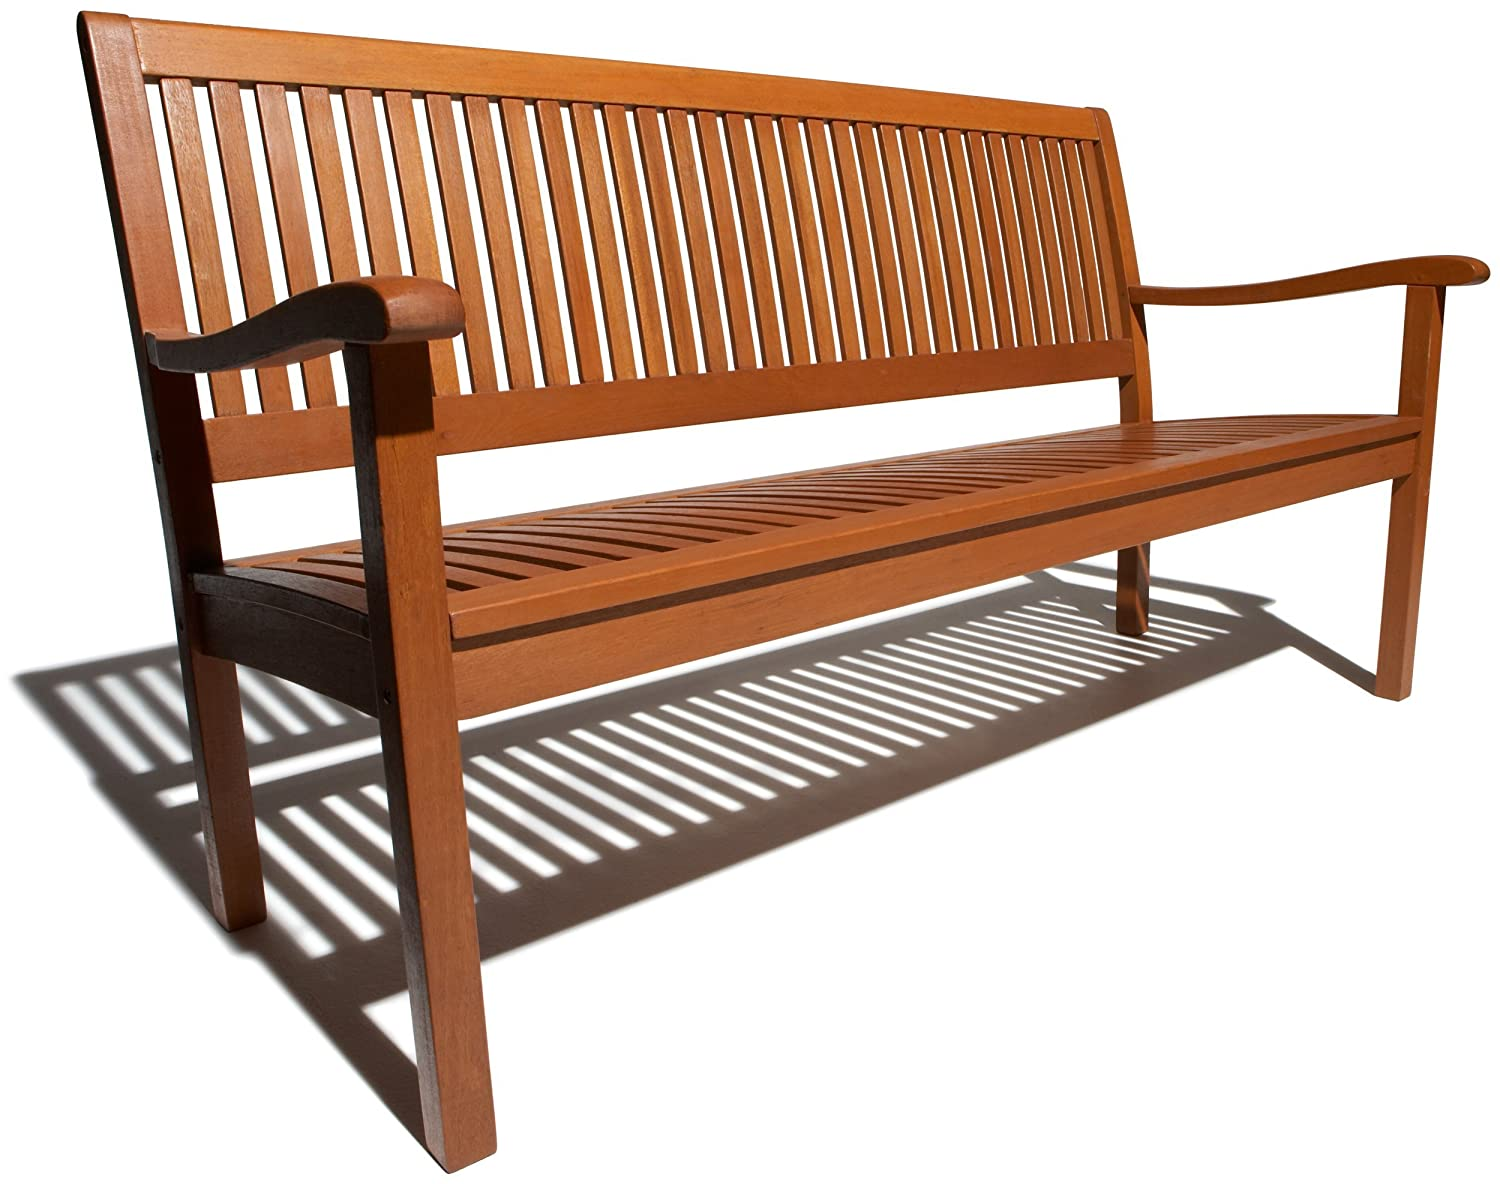 Wood patio bench home decor and furniture deals Furniture benches